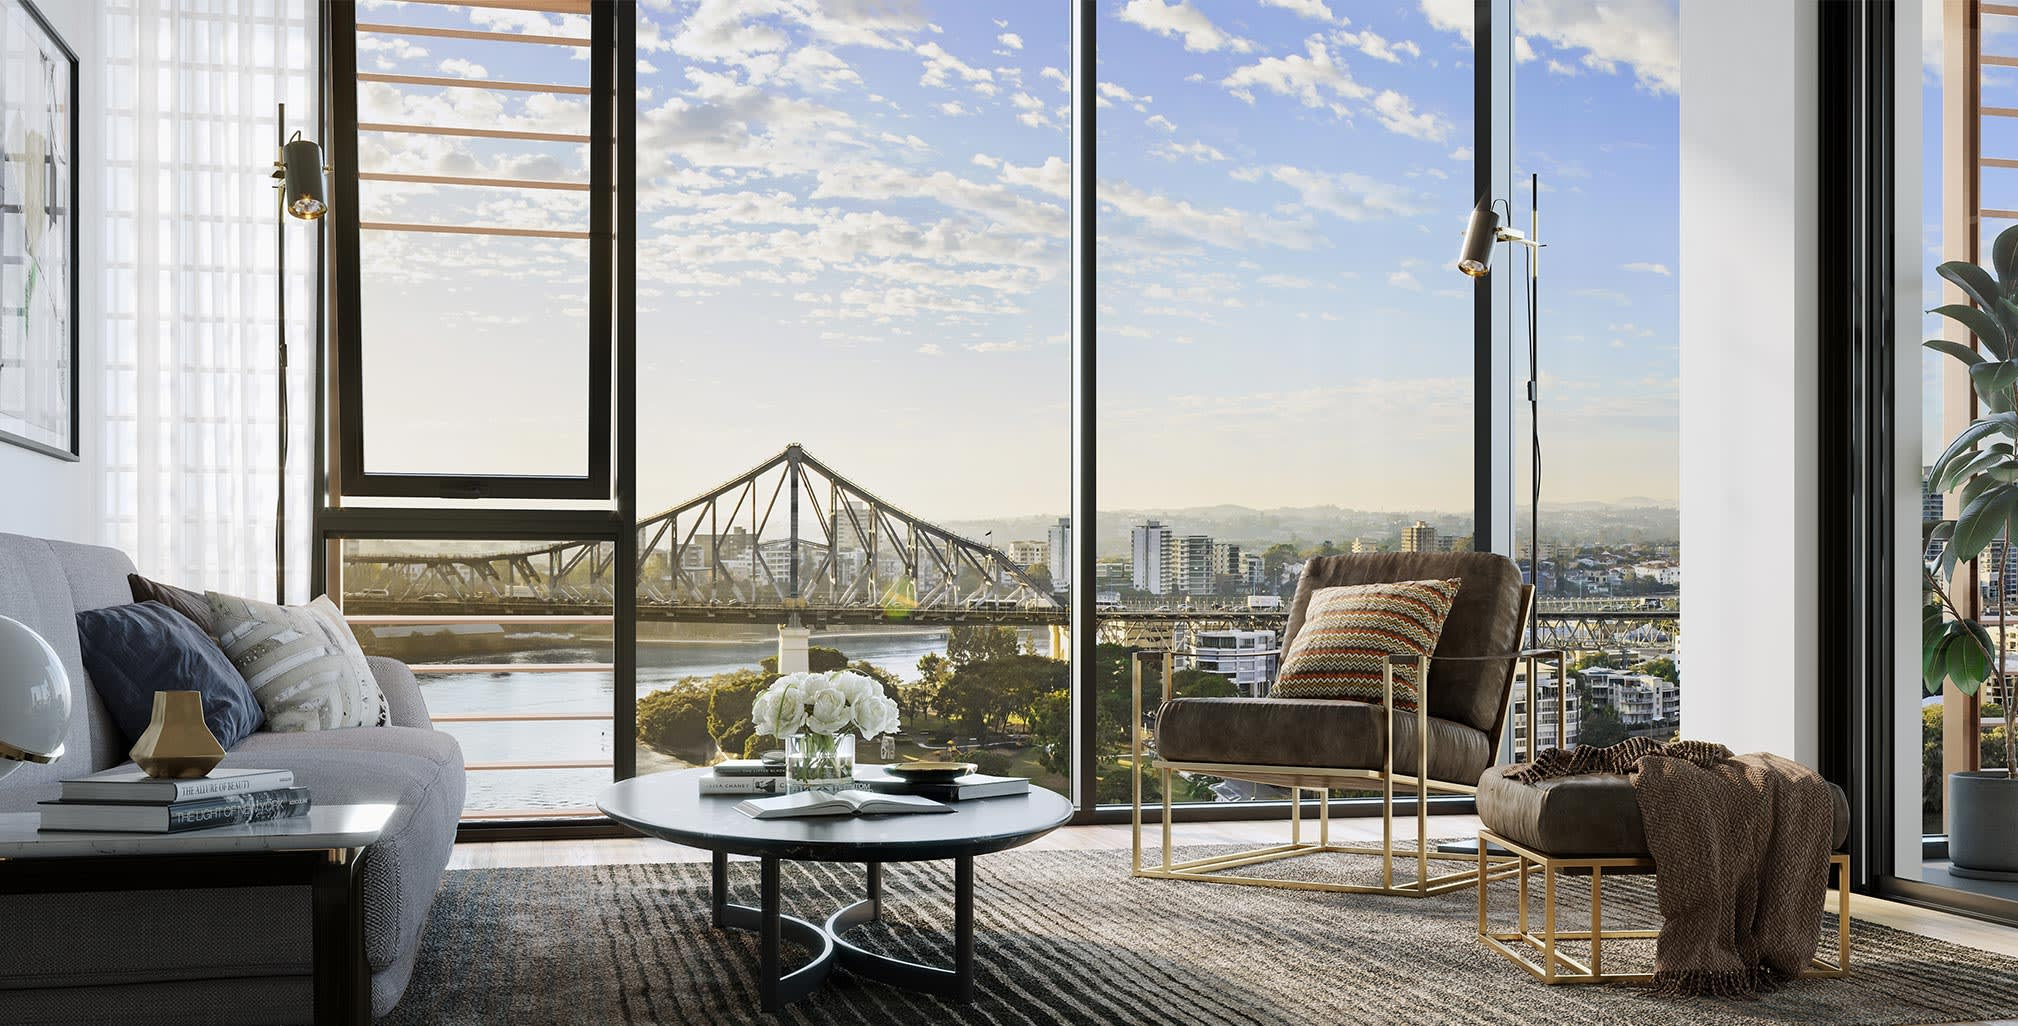 What investors are looking for in Australian properties based on Urban data